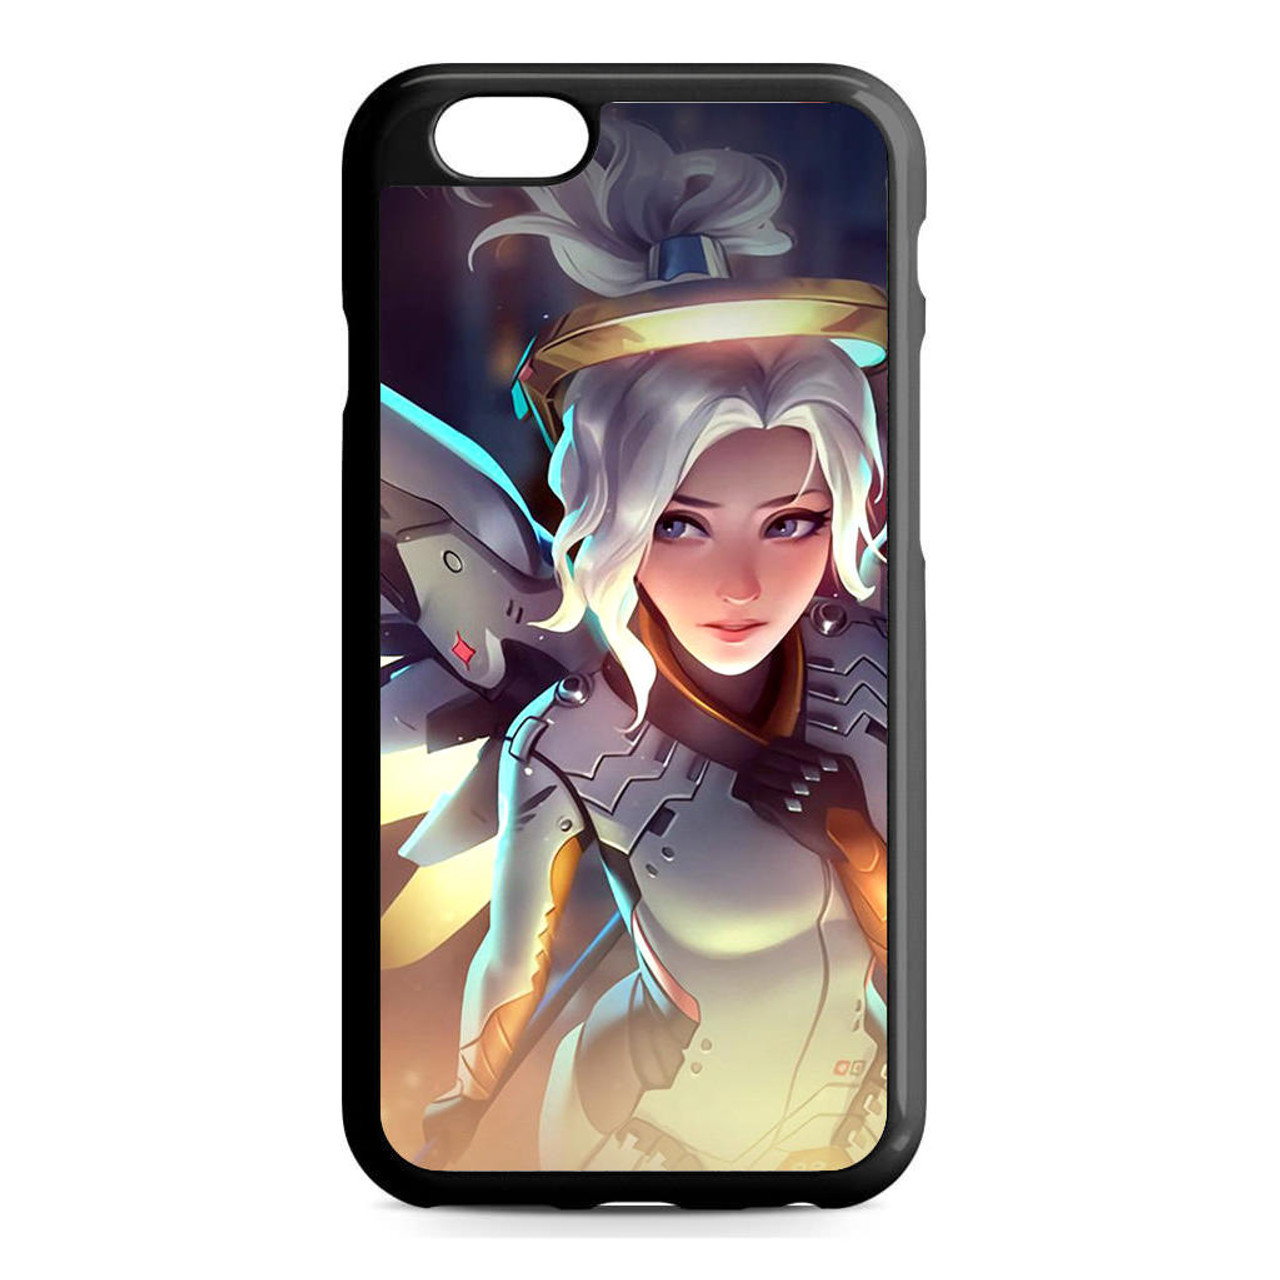 promo code dd086 8503b Mercy Overwatch Angel Healer iPhone 6/6S Case